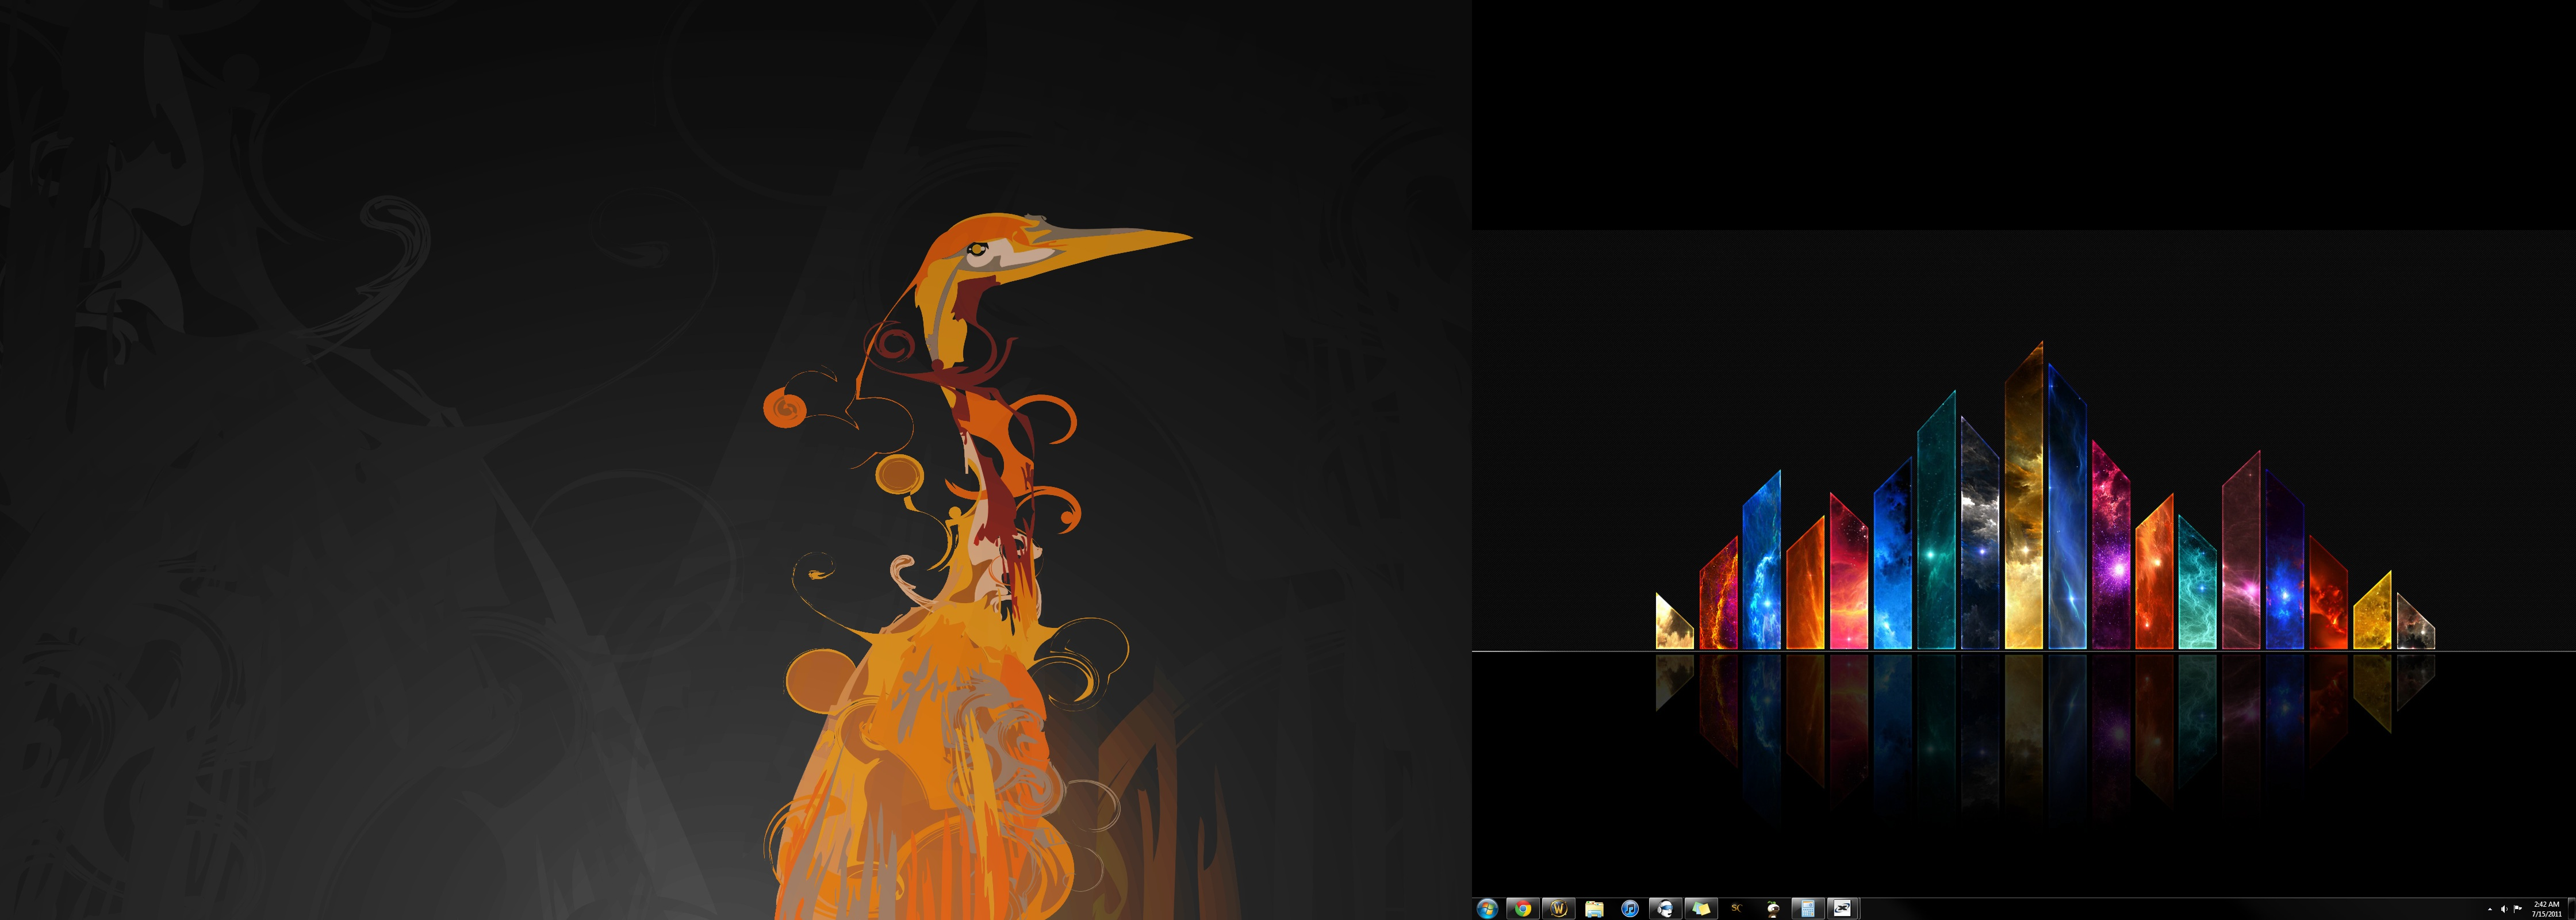 boyiee general desktop commander fonts wing list experimenting to-do rainmeter mind decided kids days icons silly fancy desktops